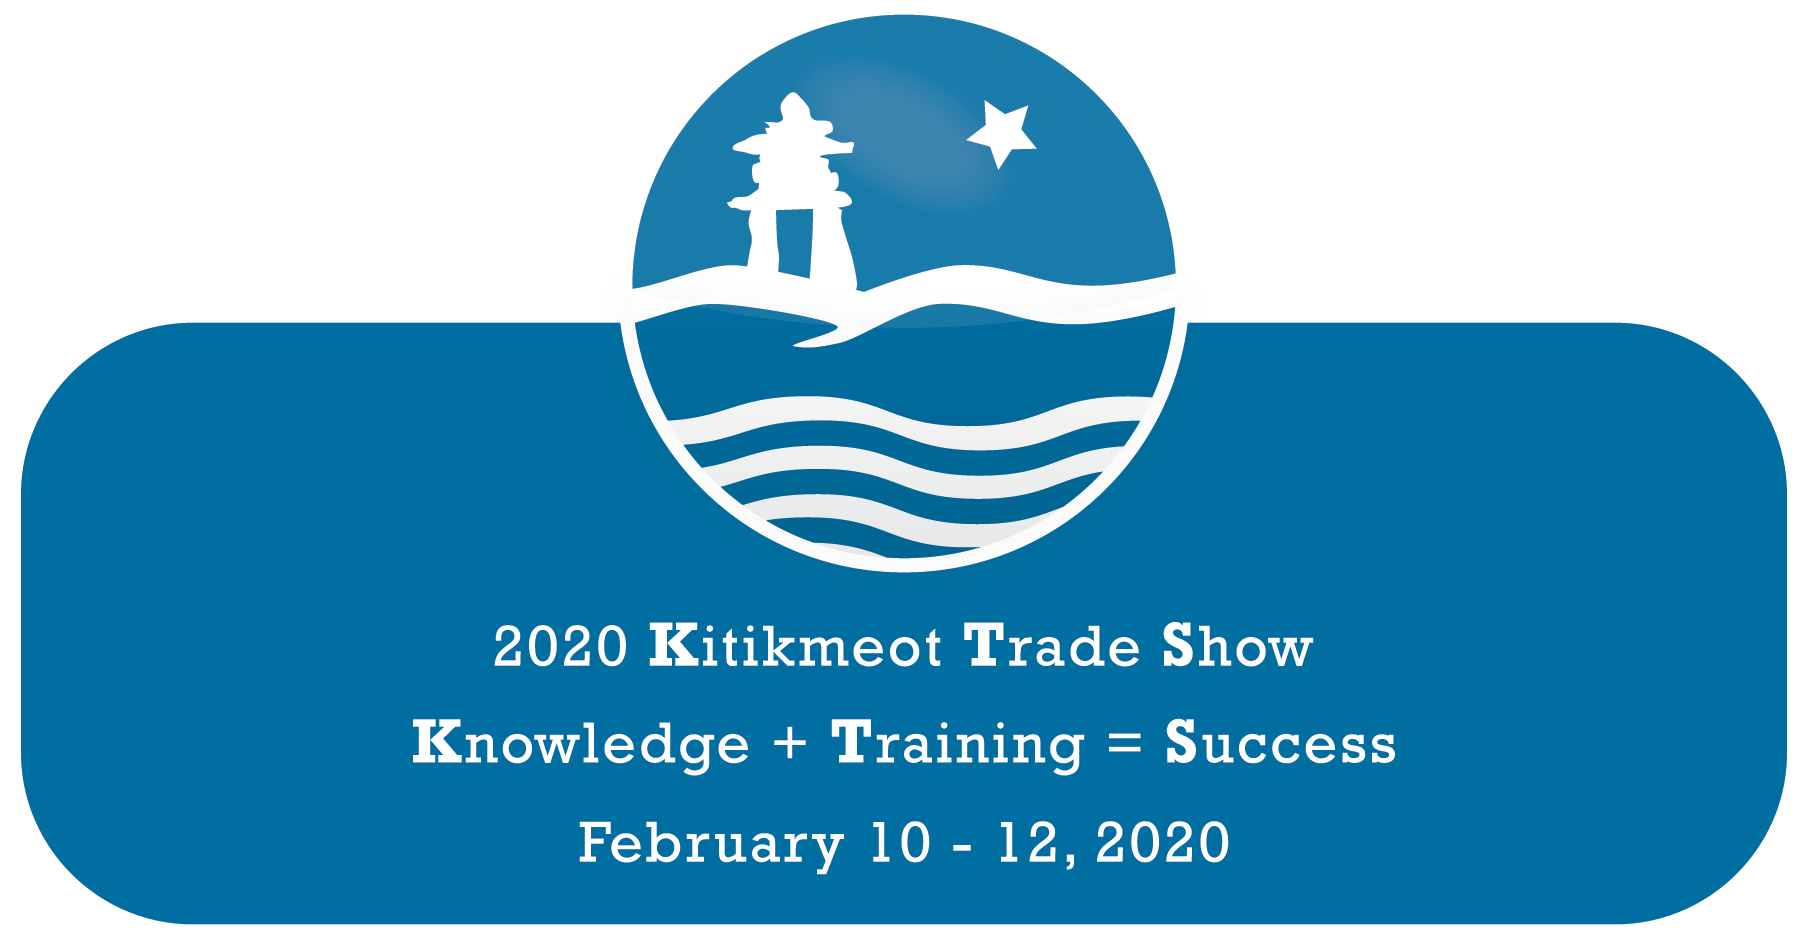 2020 Kitikmeot Trade Show